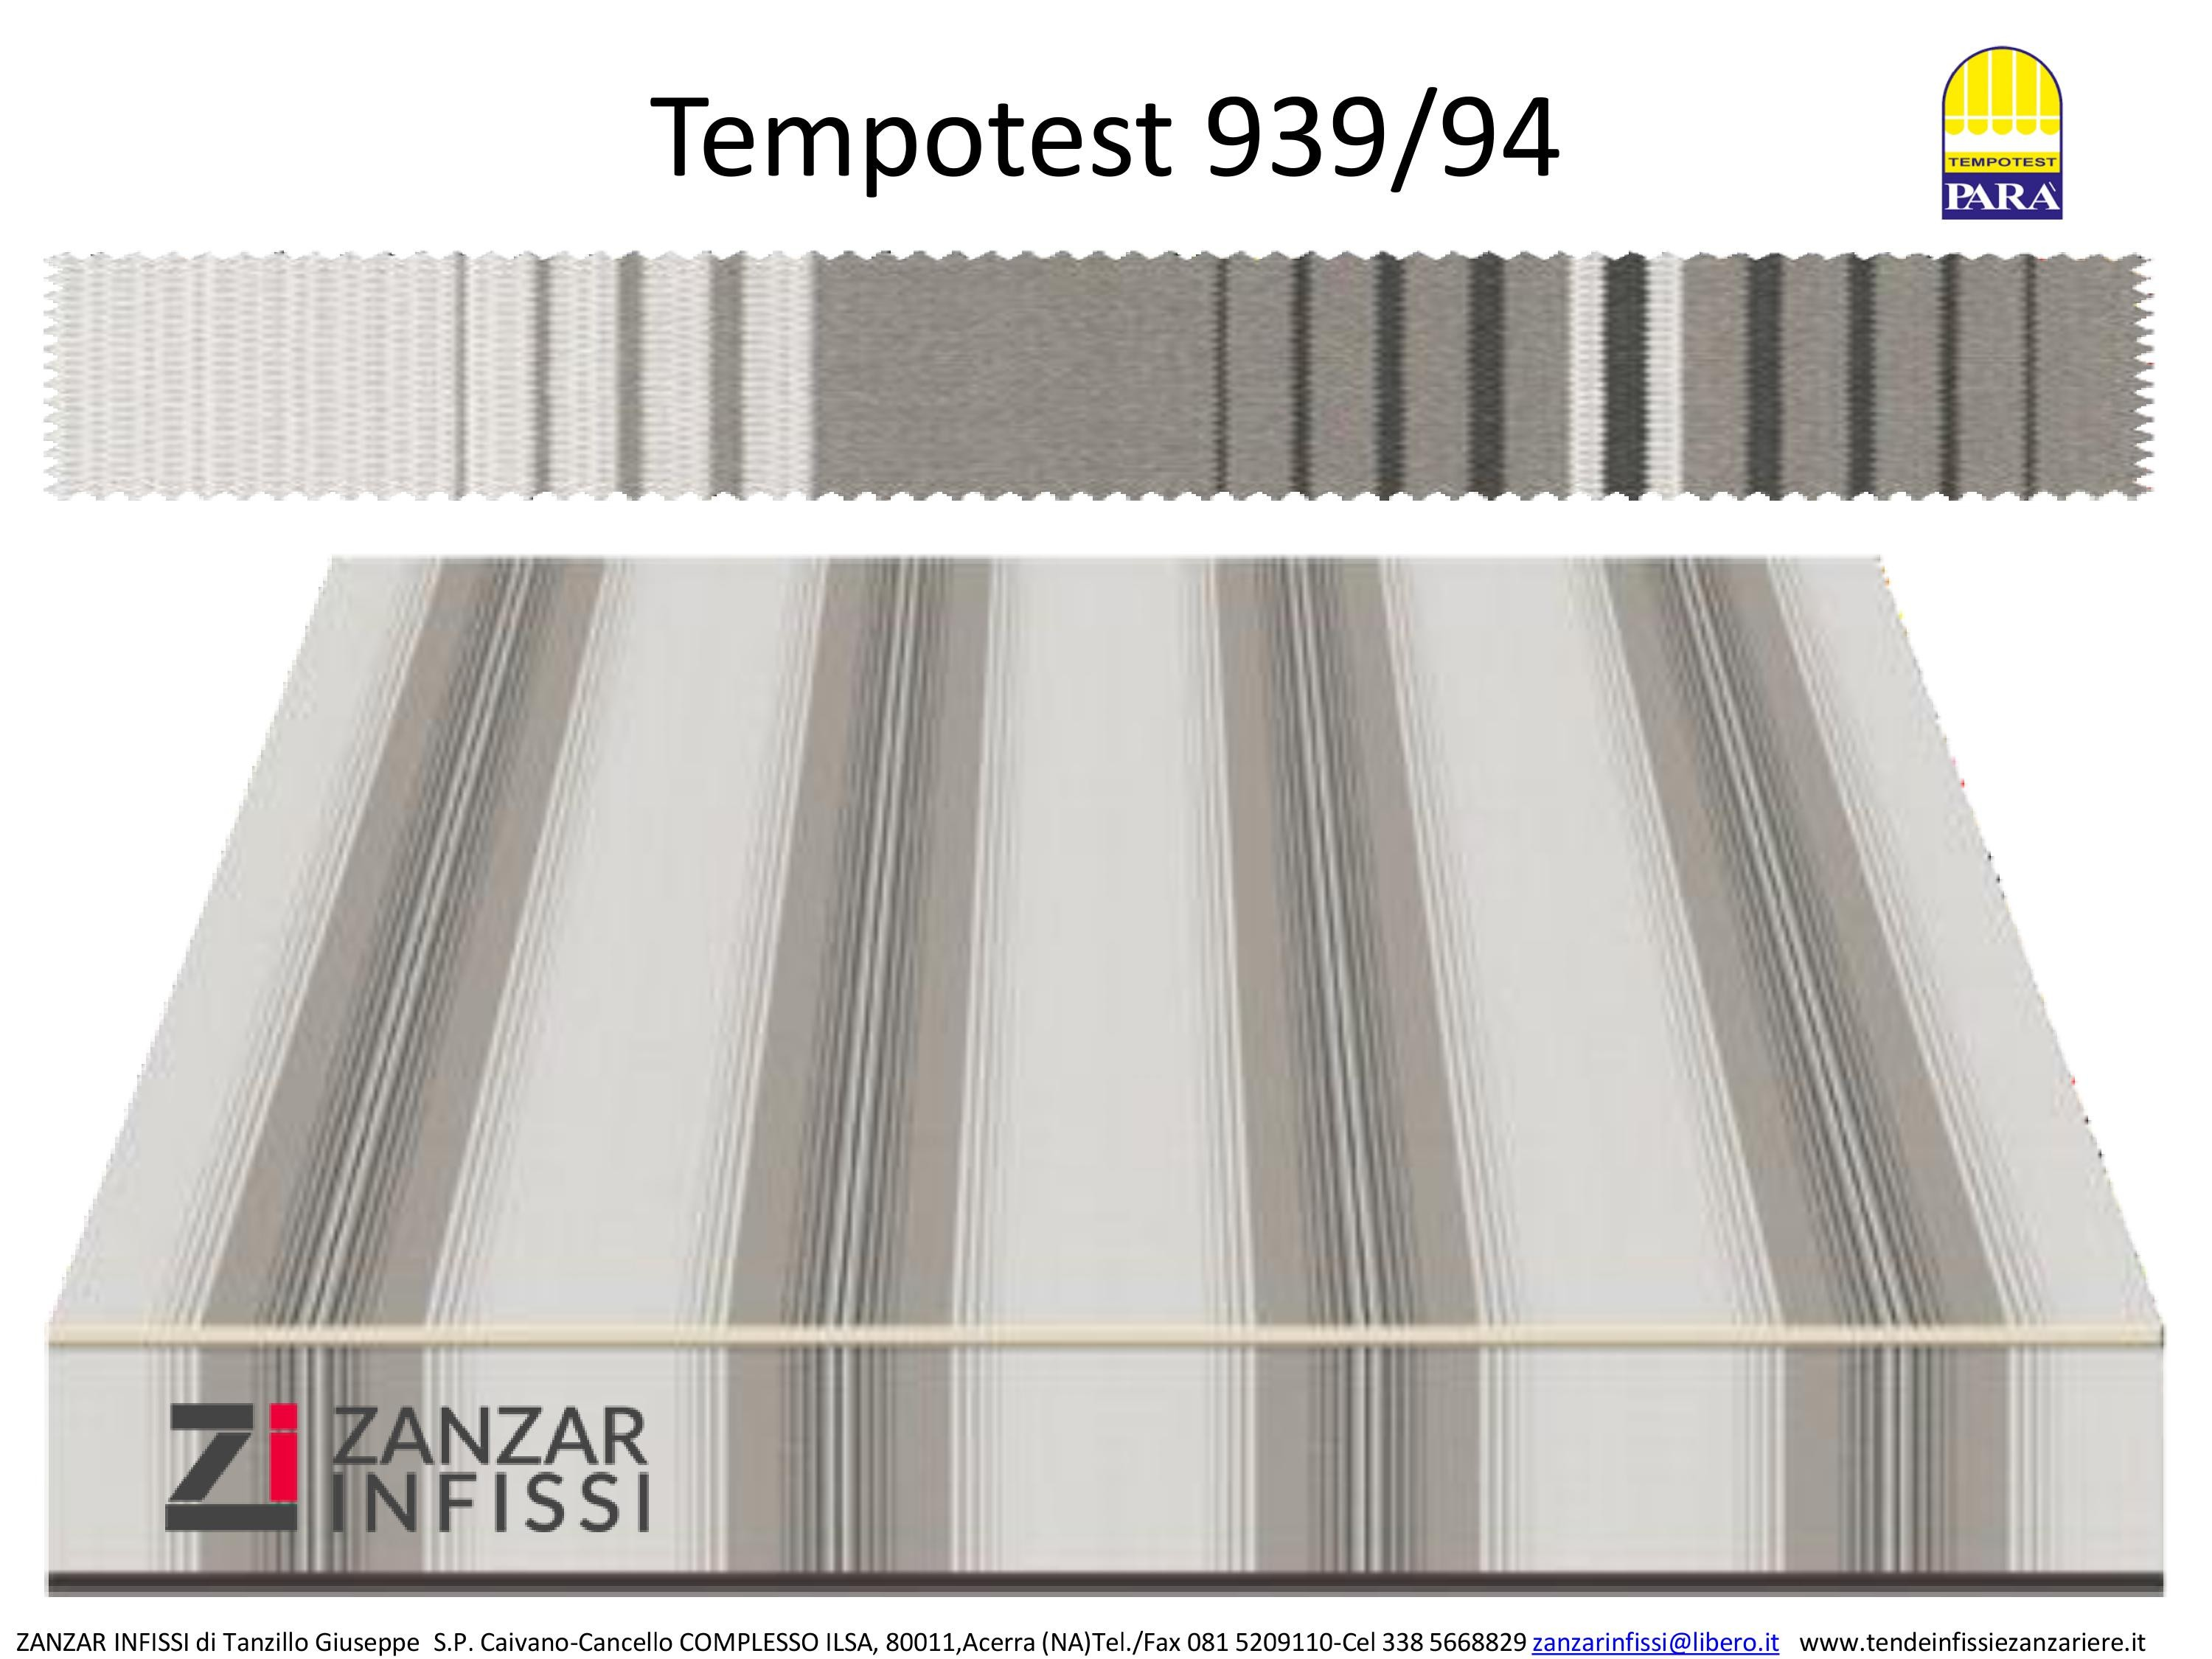 Tempotest 939/94